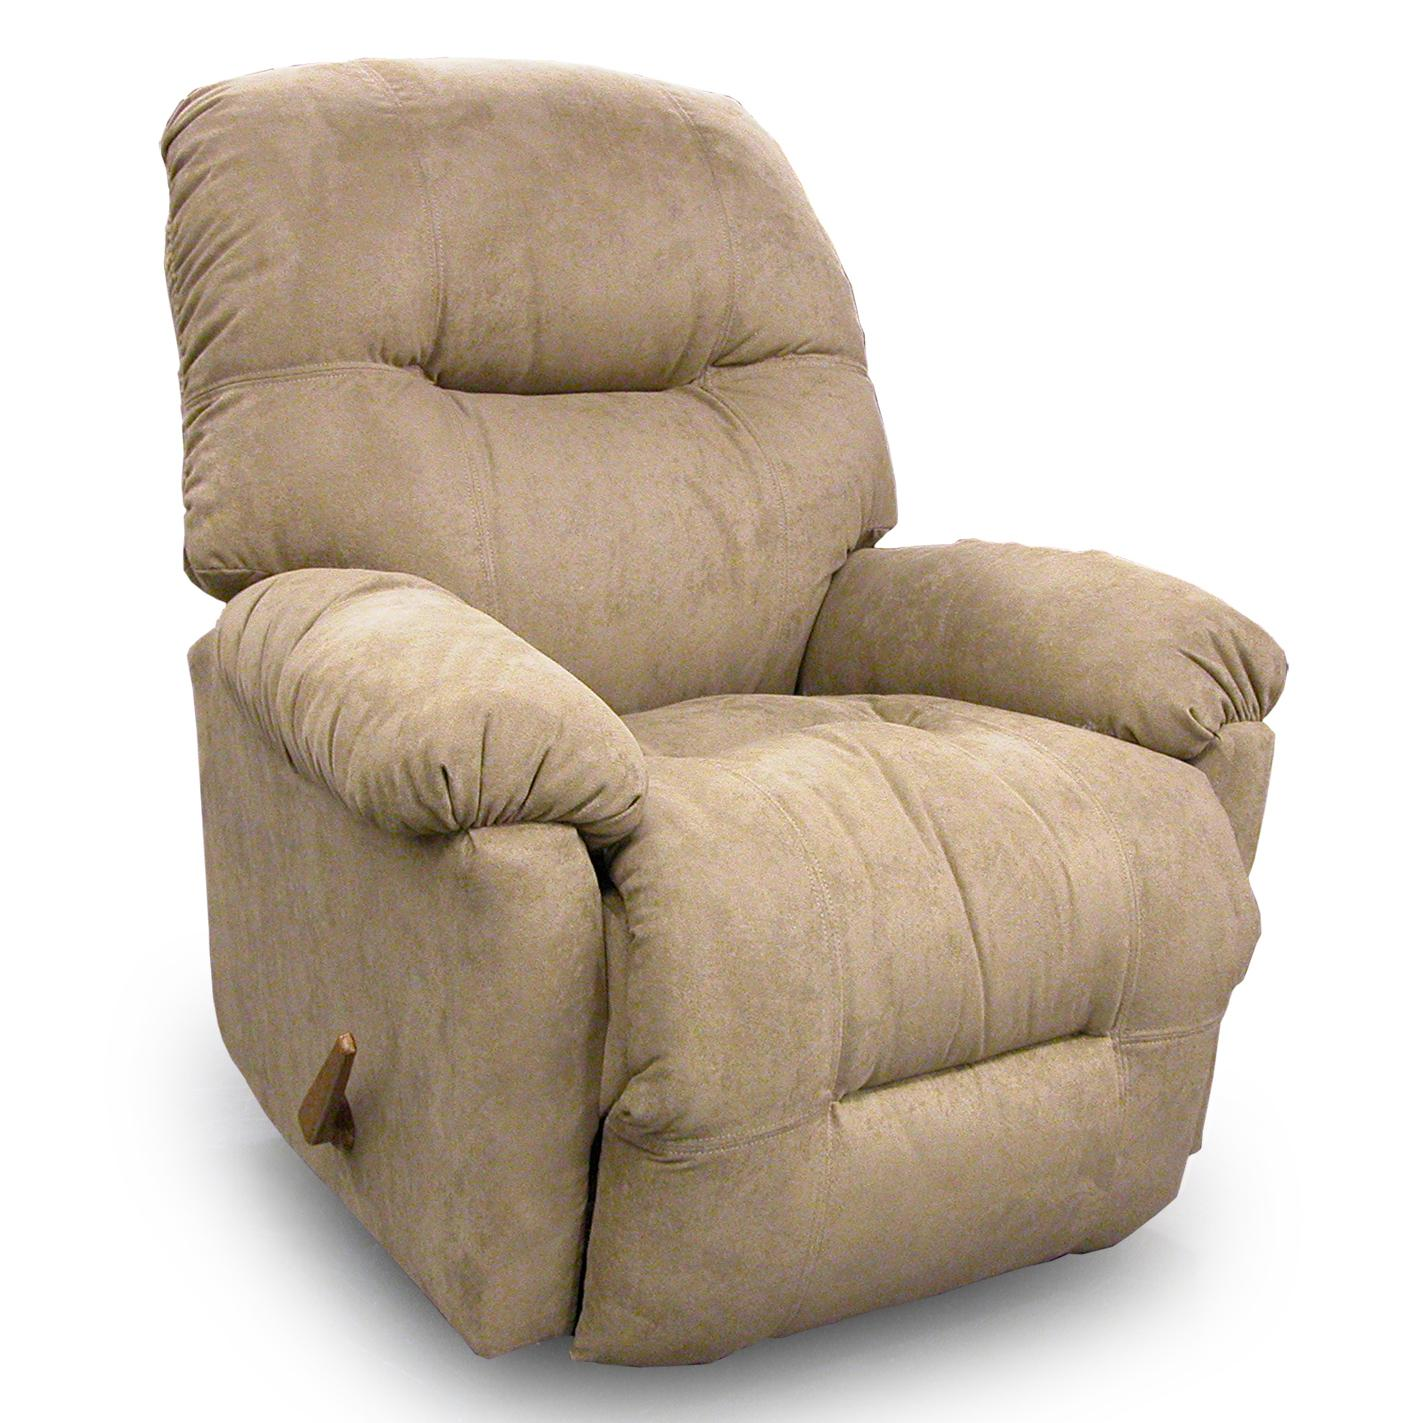 Best home furnishings recliners petite wynette swivel for Best furniture for home